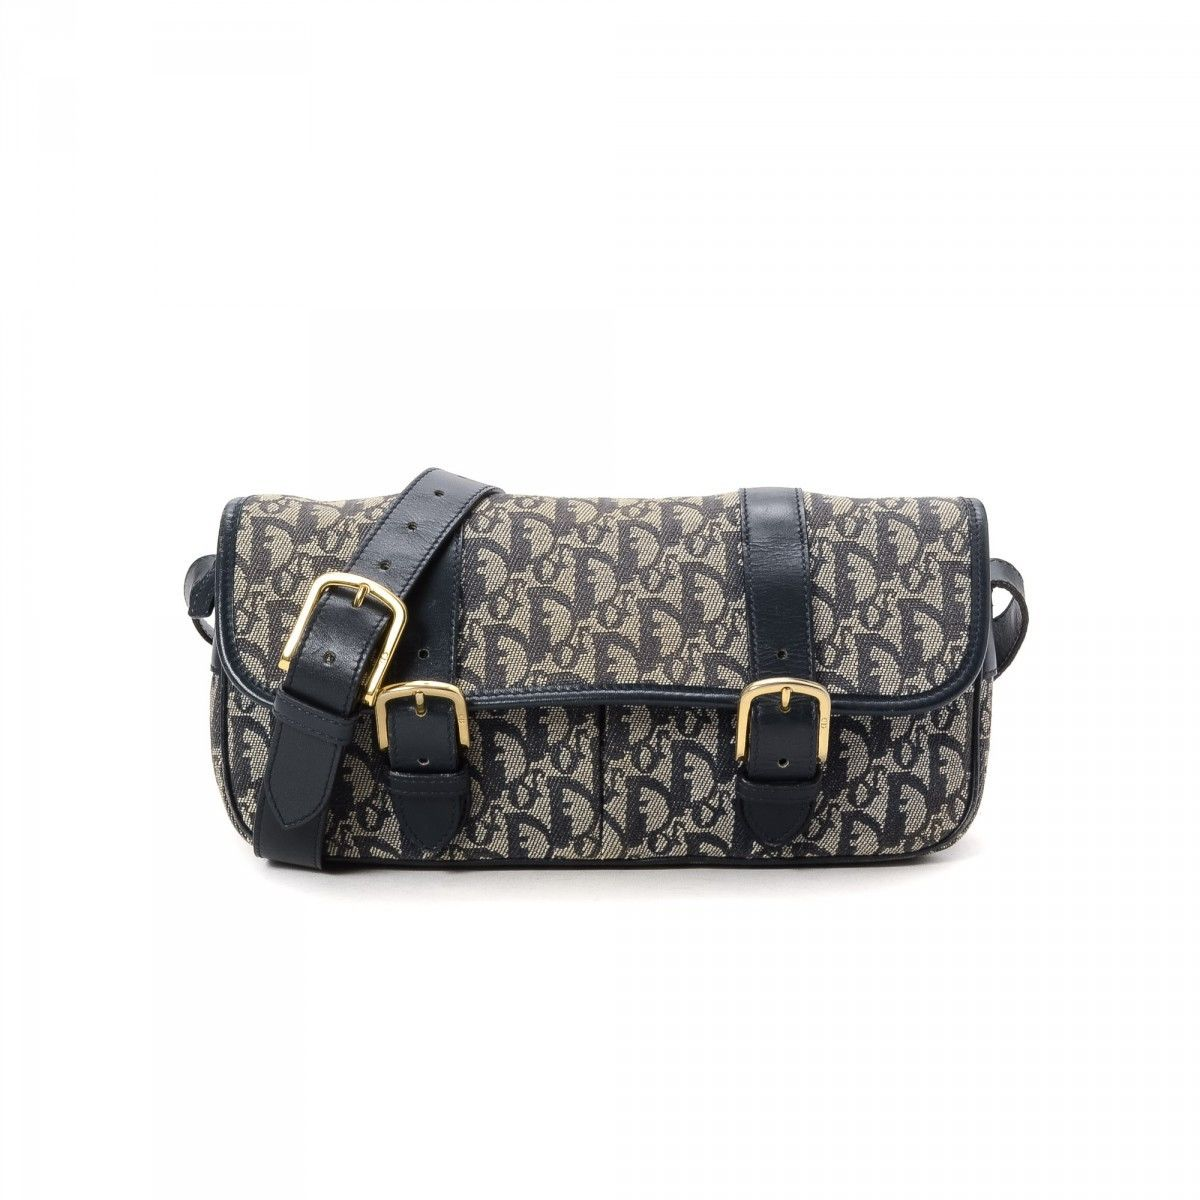 5430e340e Dior Bag Crossbody | Stanford Center for Opportunity Policy in Education